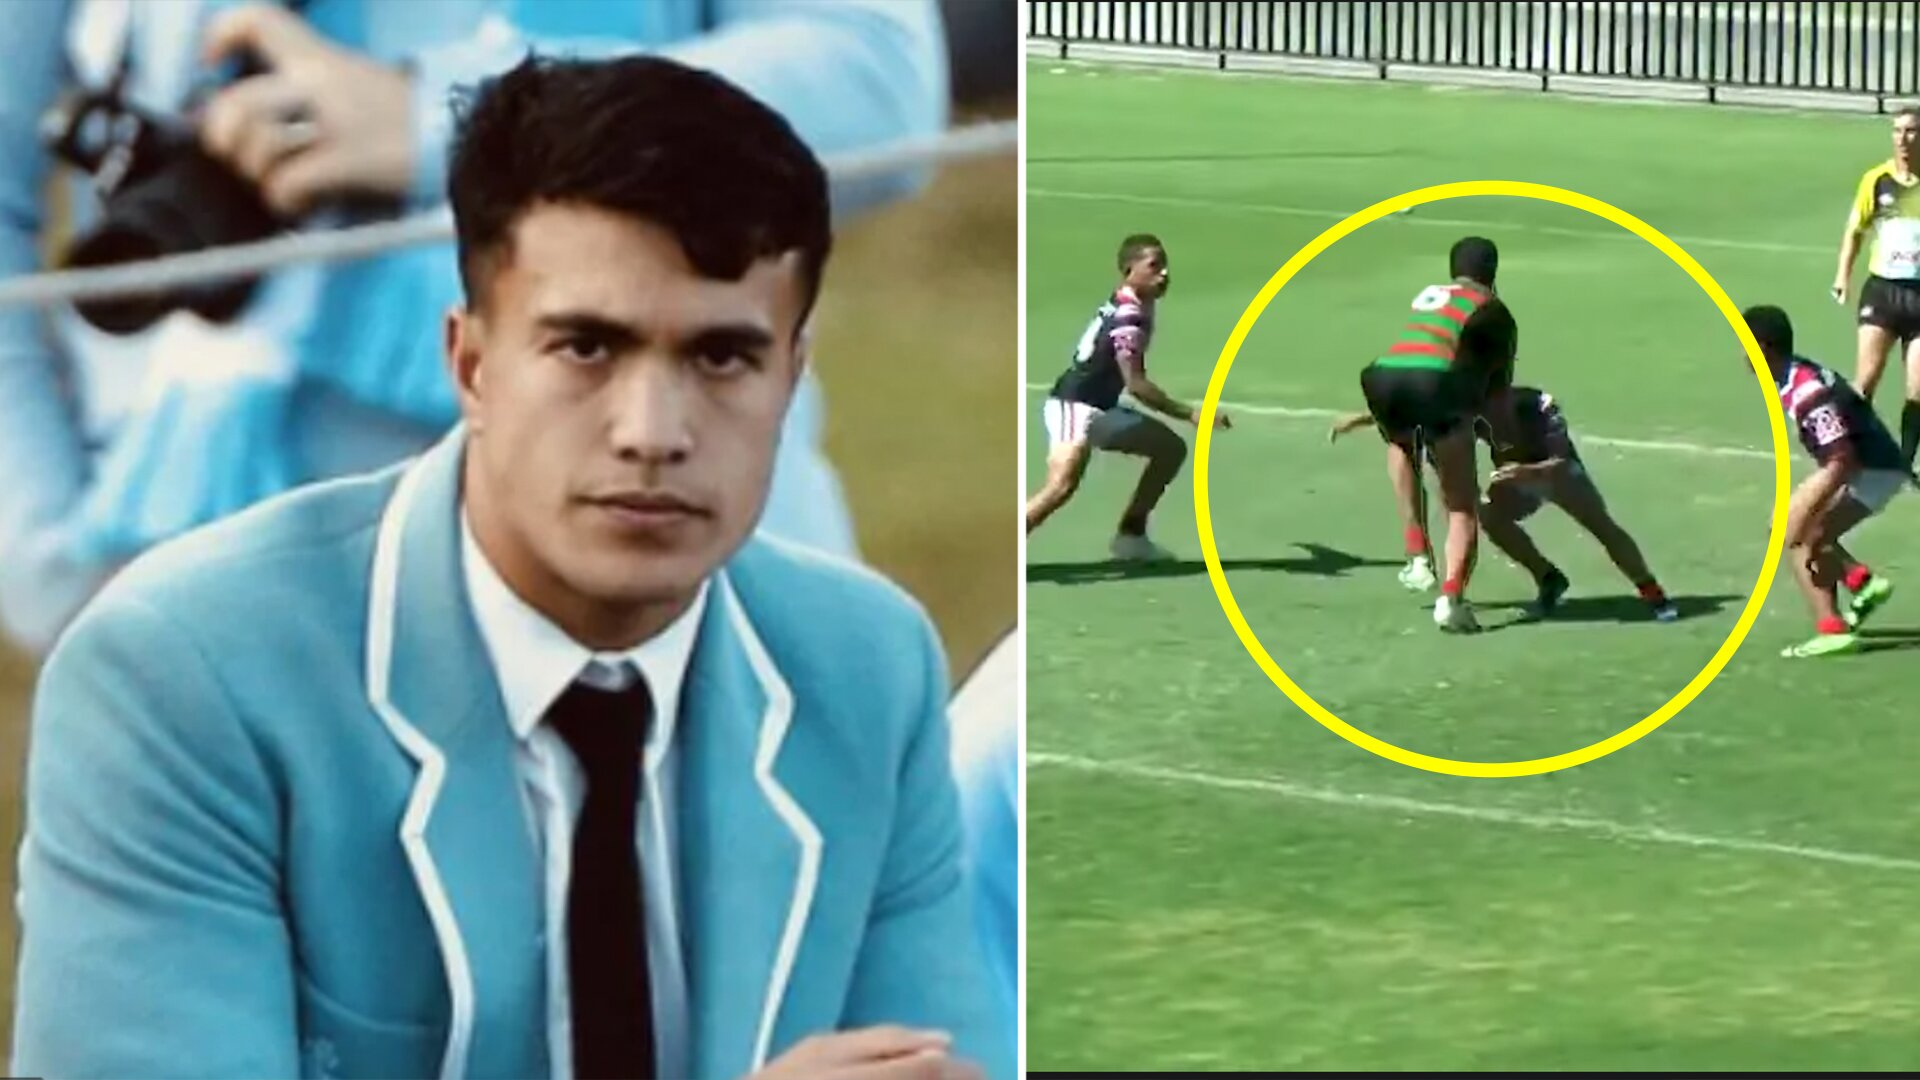 The first full highlight reel has dropped on the 'freak of nature' rugby wonderkid Joseph Suaalii